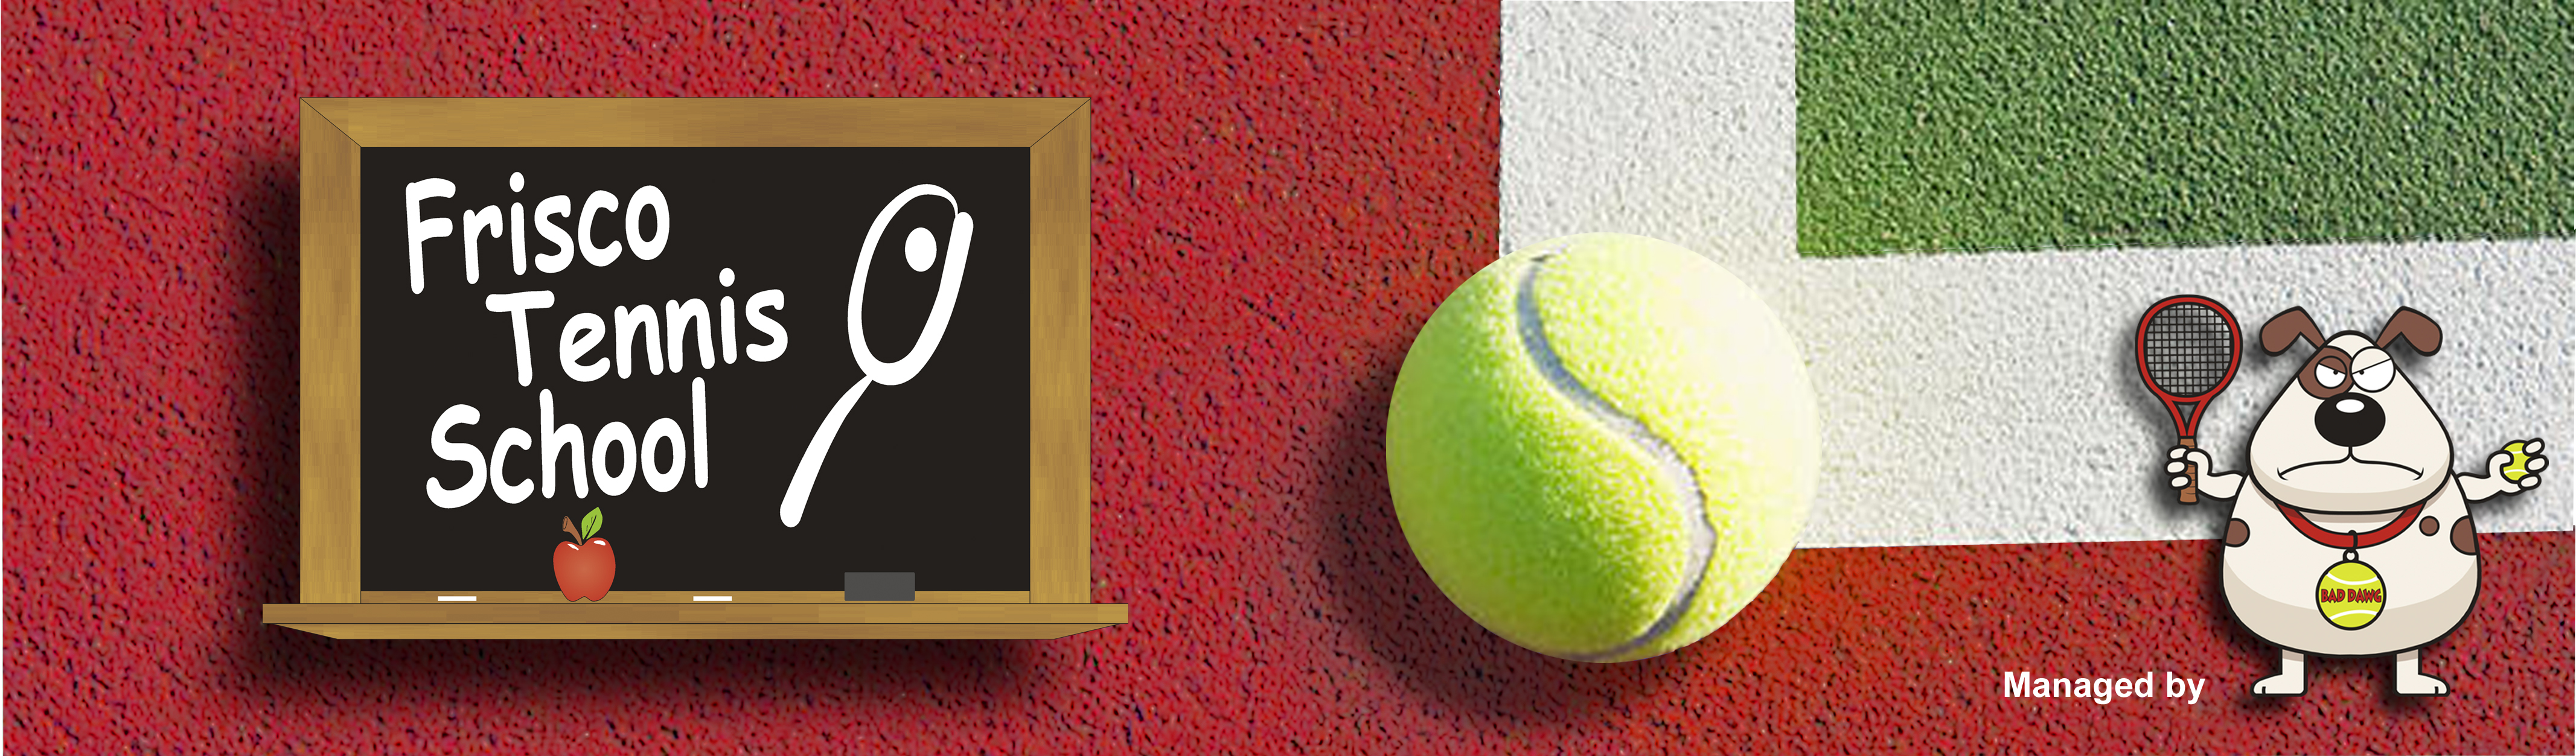 header frisco tennis school version 3